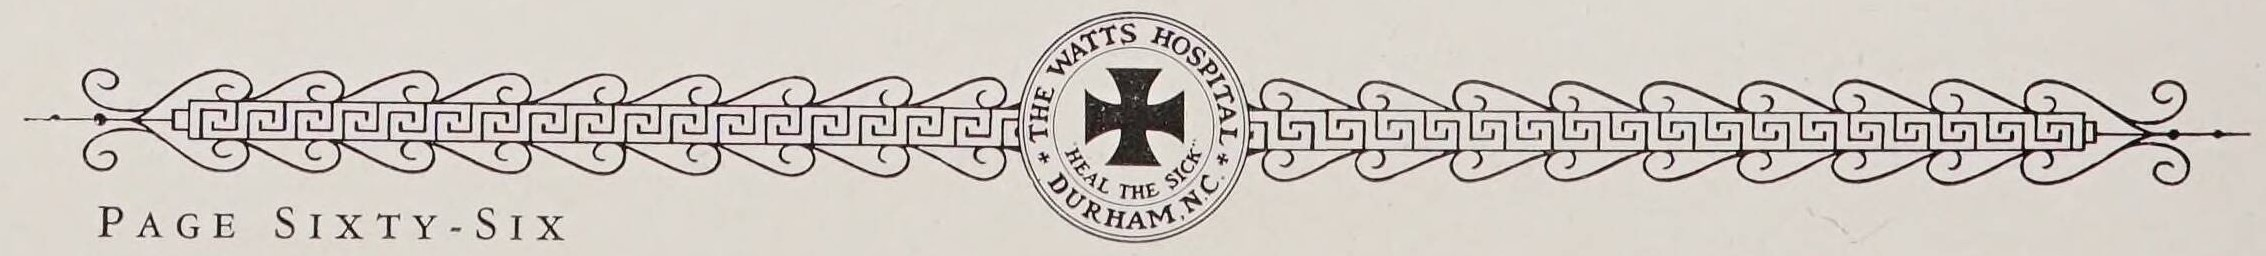 """Watts Hospital School of Nursing 1937 yearbook border. In the center of the border is the insignia of Watts Hospital which reads: """"Watts Hospital. Durham, NC. Heal the Sick."""""""